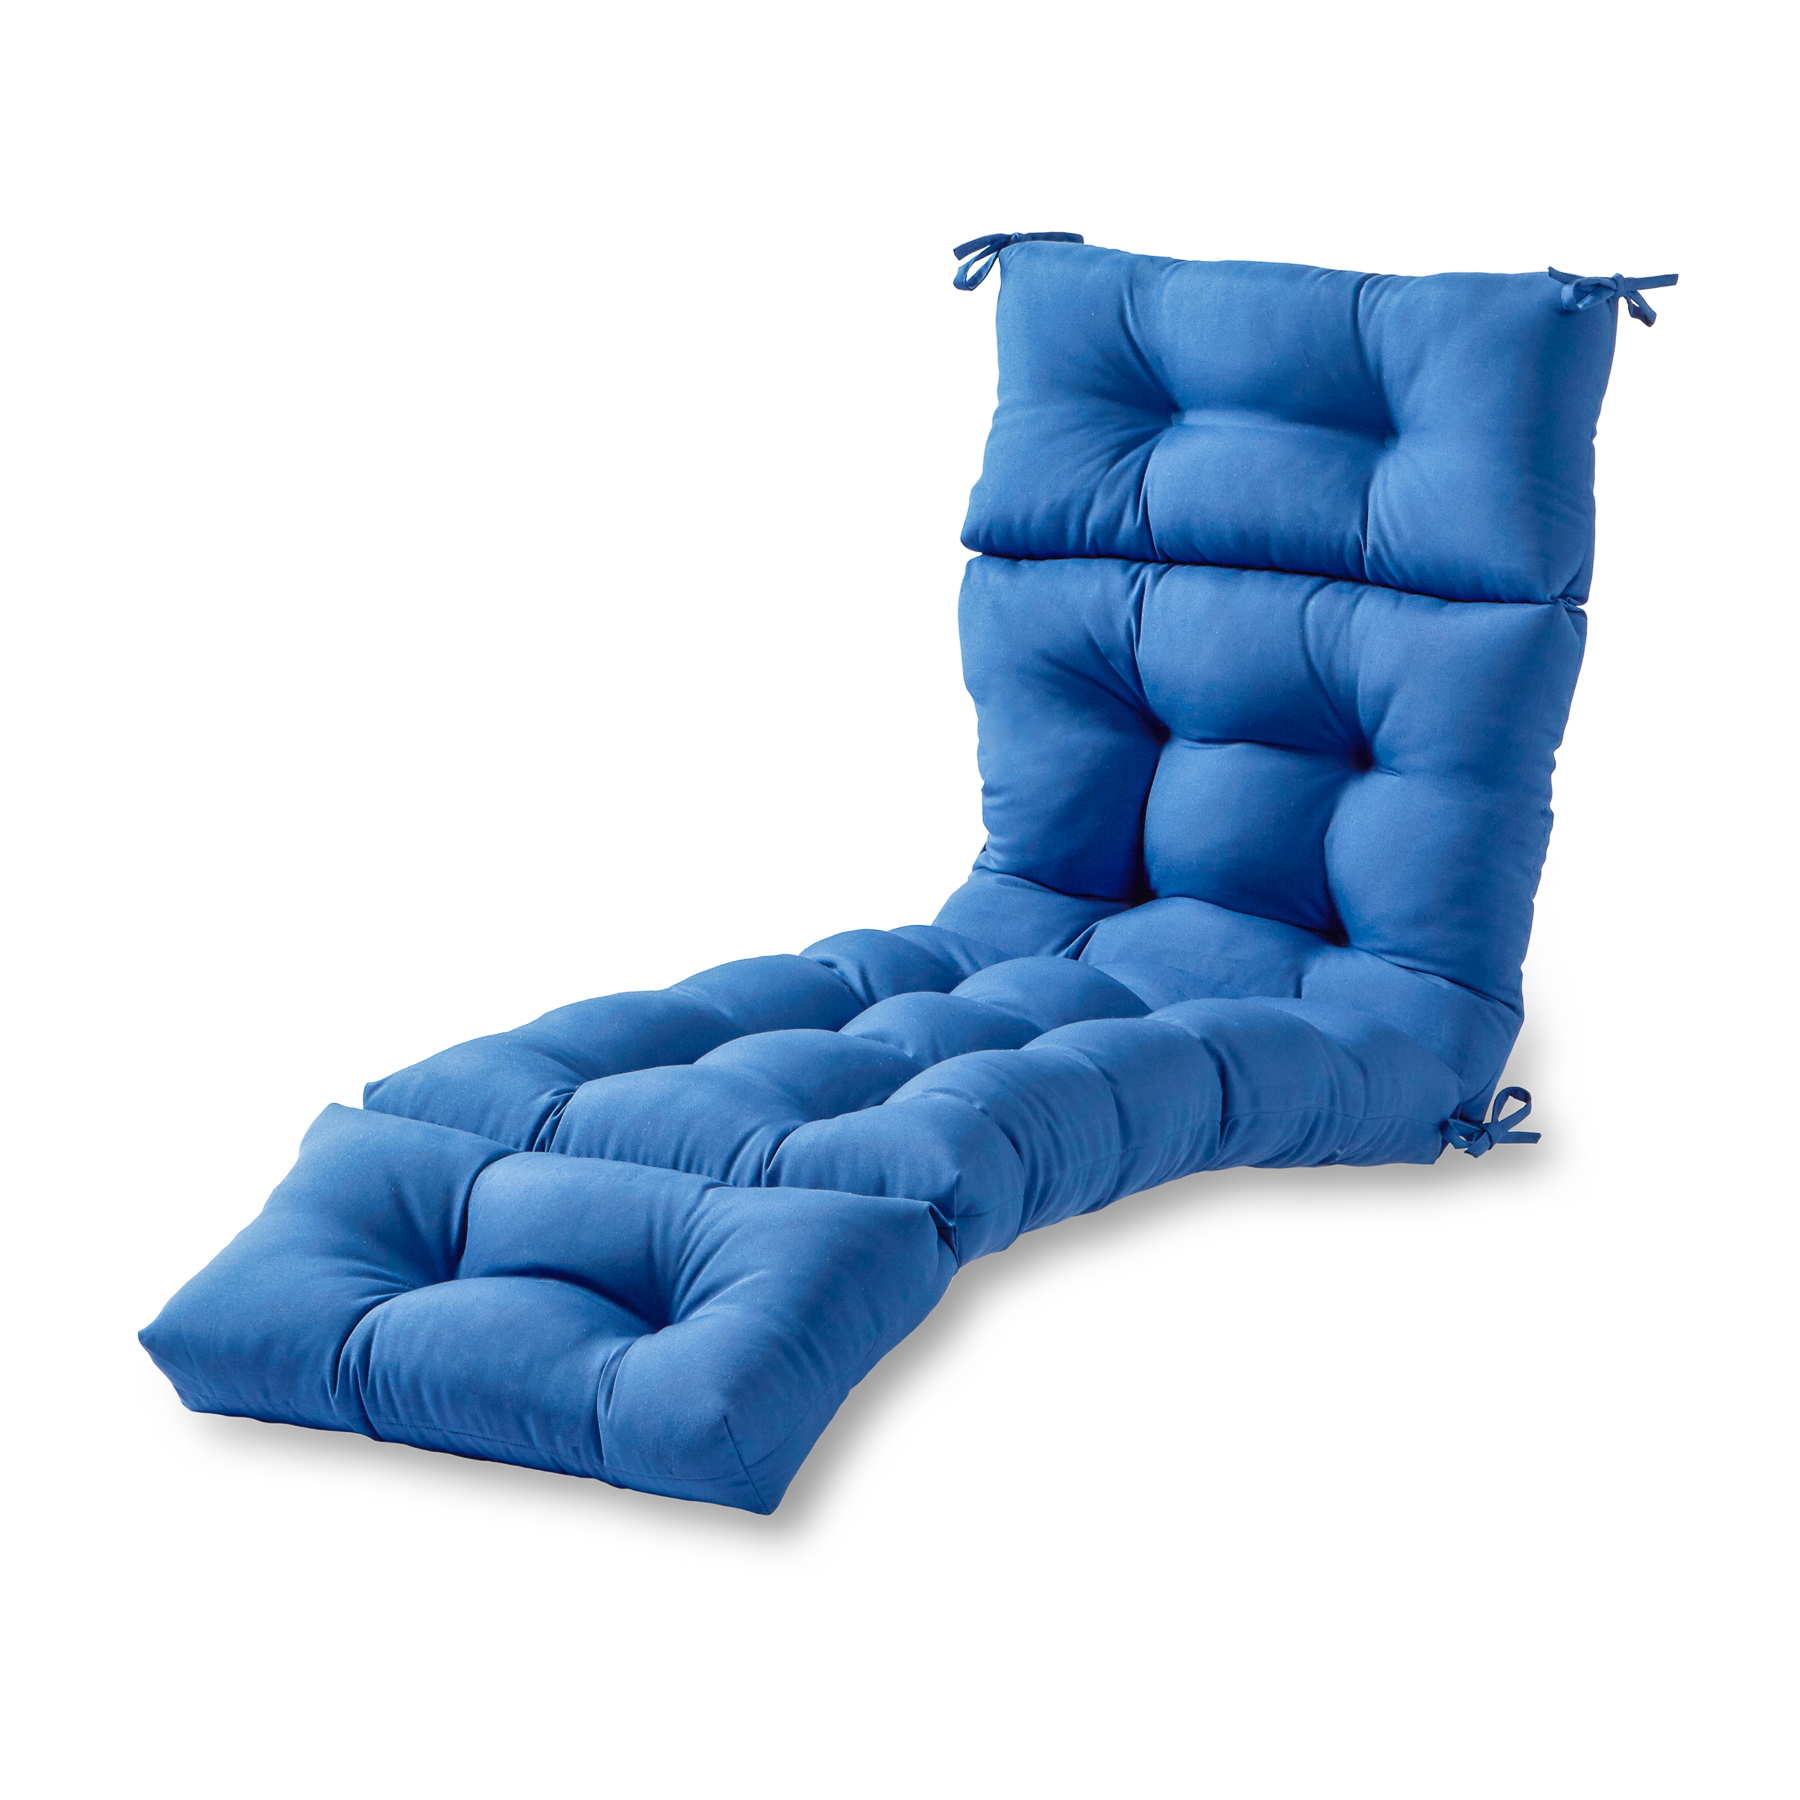 Greendale Home Fashions 72 In Outdoor Chaise Lounger Cushion Marine Blue